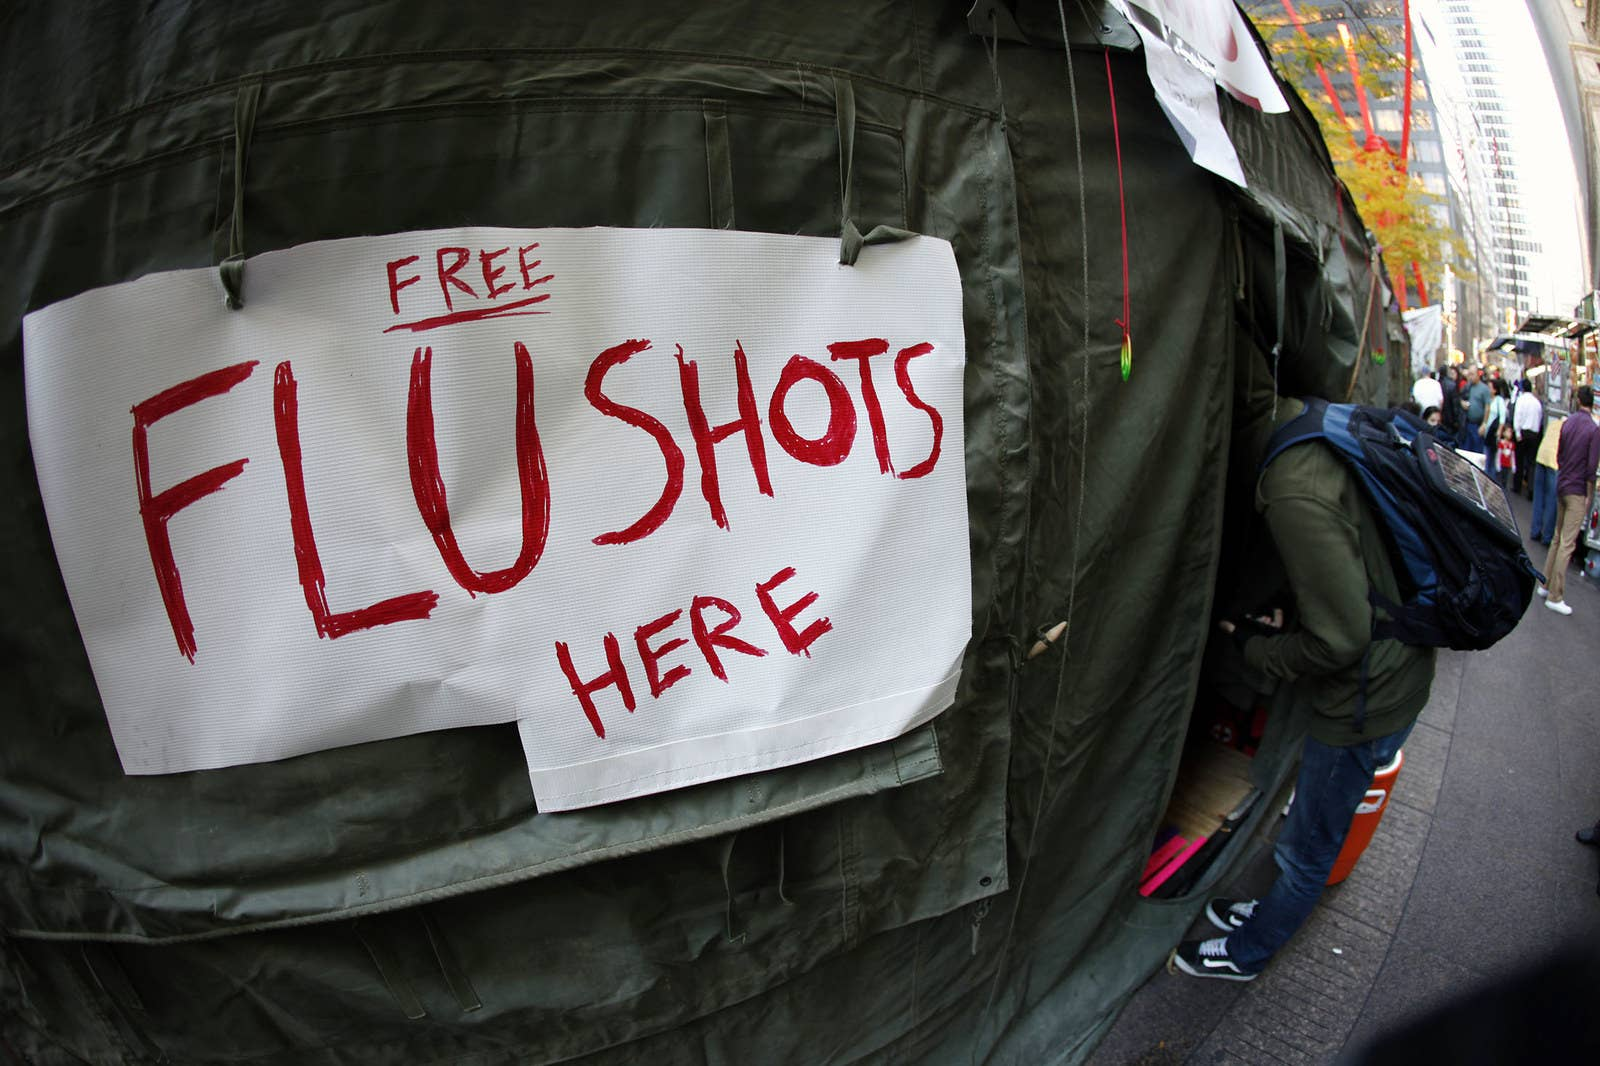 A protester leans into the medical tent where free flu shots and other medical services are being provided at Zuccotti Park on Nov. 10, 2011.